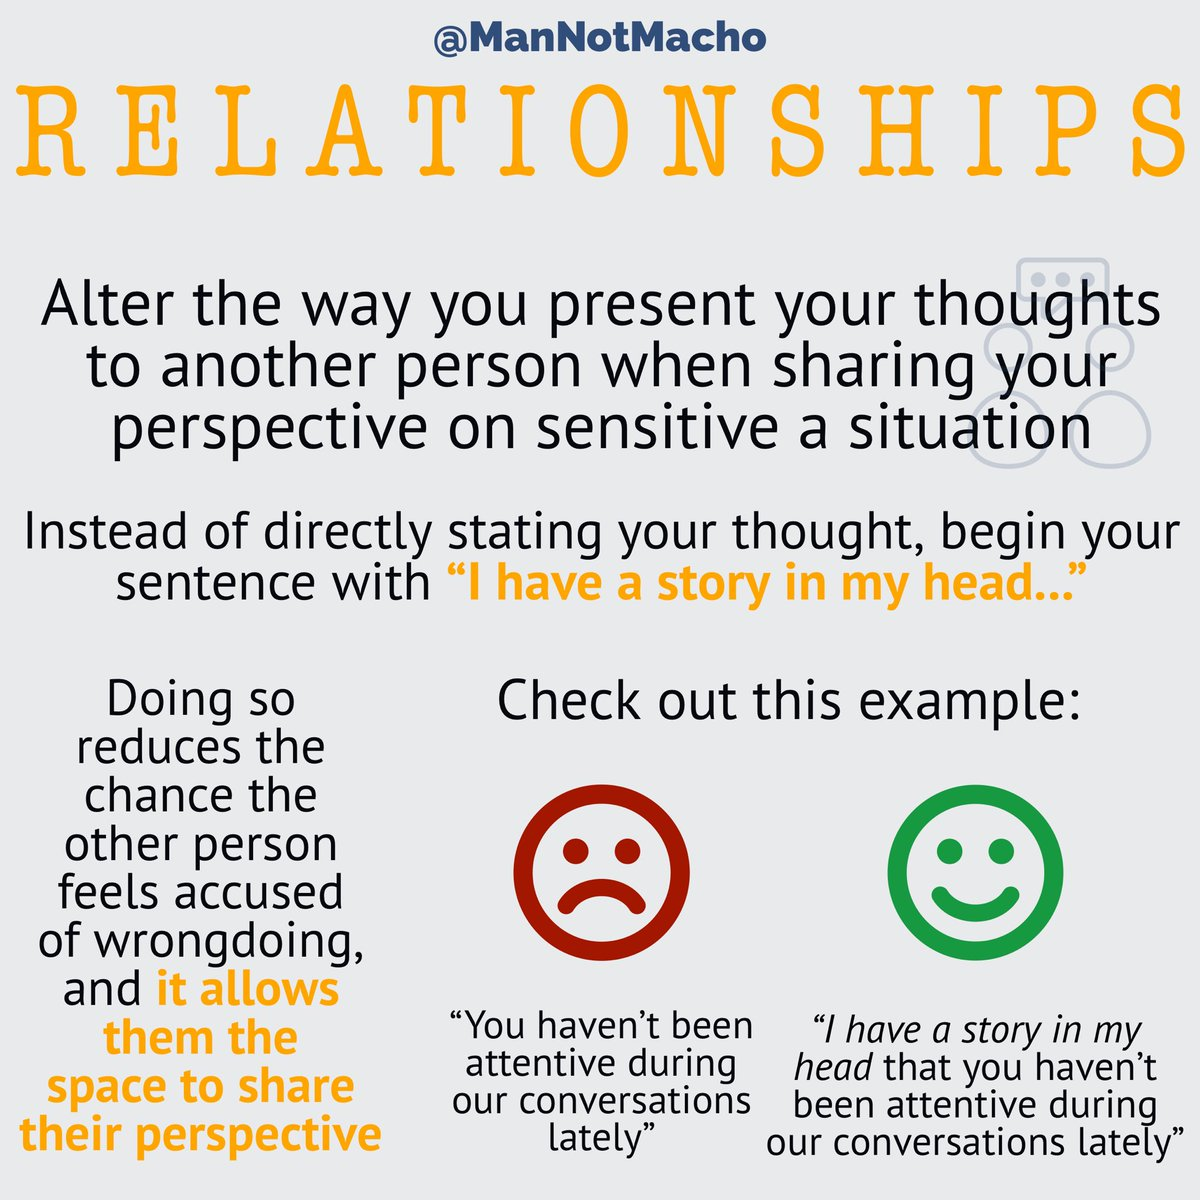 Try this out to see how your next sensitive conversation goes. What other tactics do you use to maintain an open dialogue?  #mannotmacho #mnmtips #values #corevalues #valuesmatter #modernman #gentleman #man #manhood #masculine #2020goals #communication #relationshipspic.twitter.com/YRmPwkQ8db